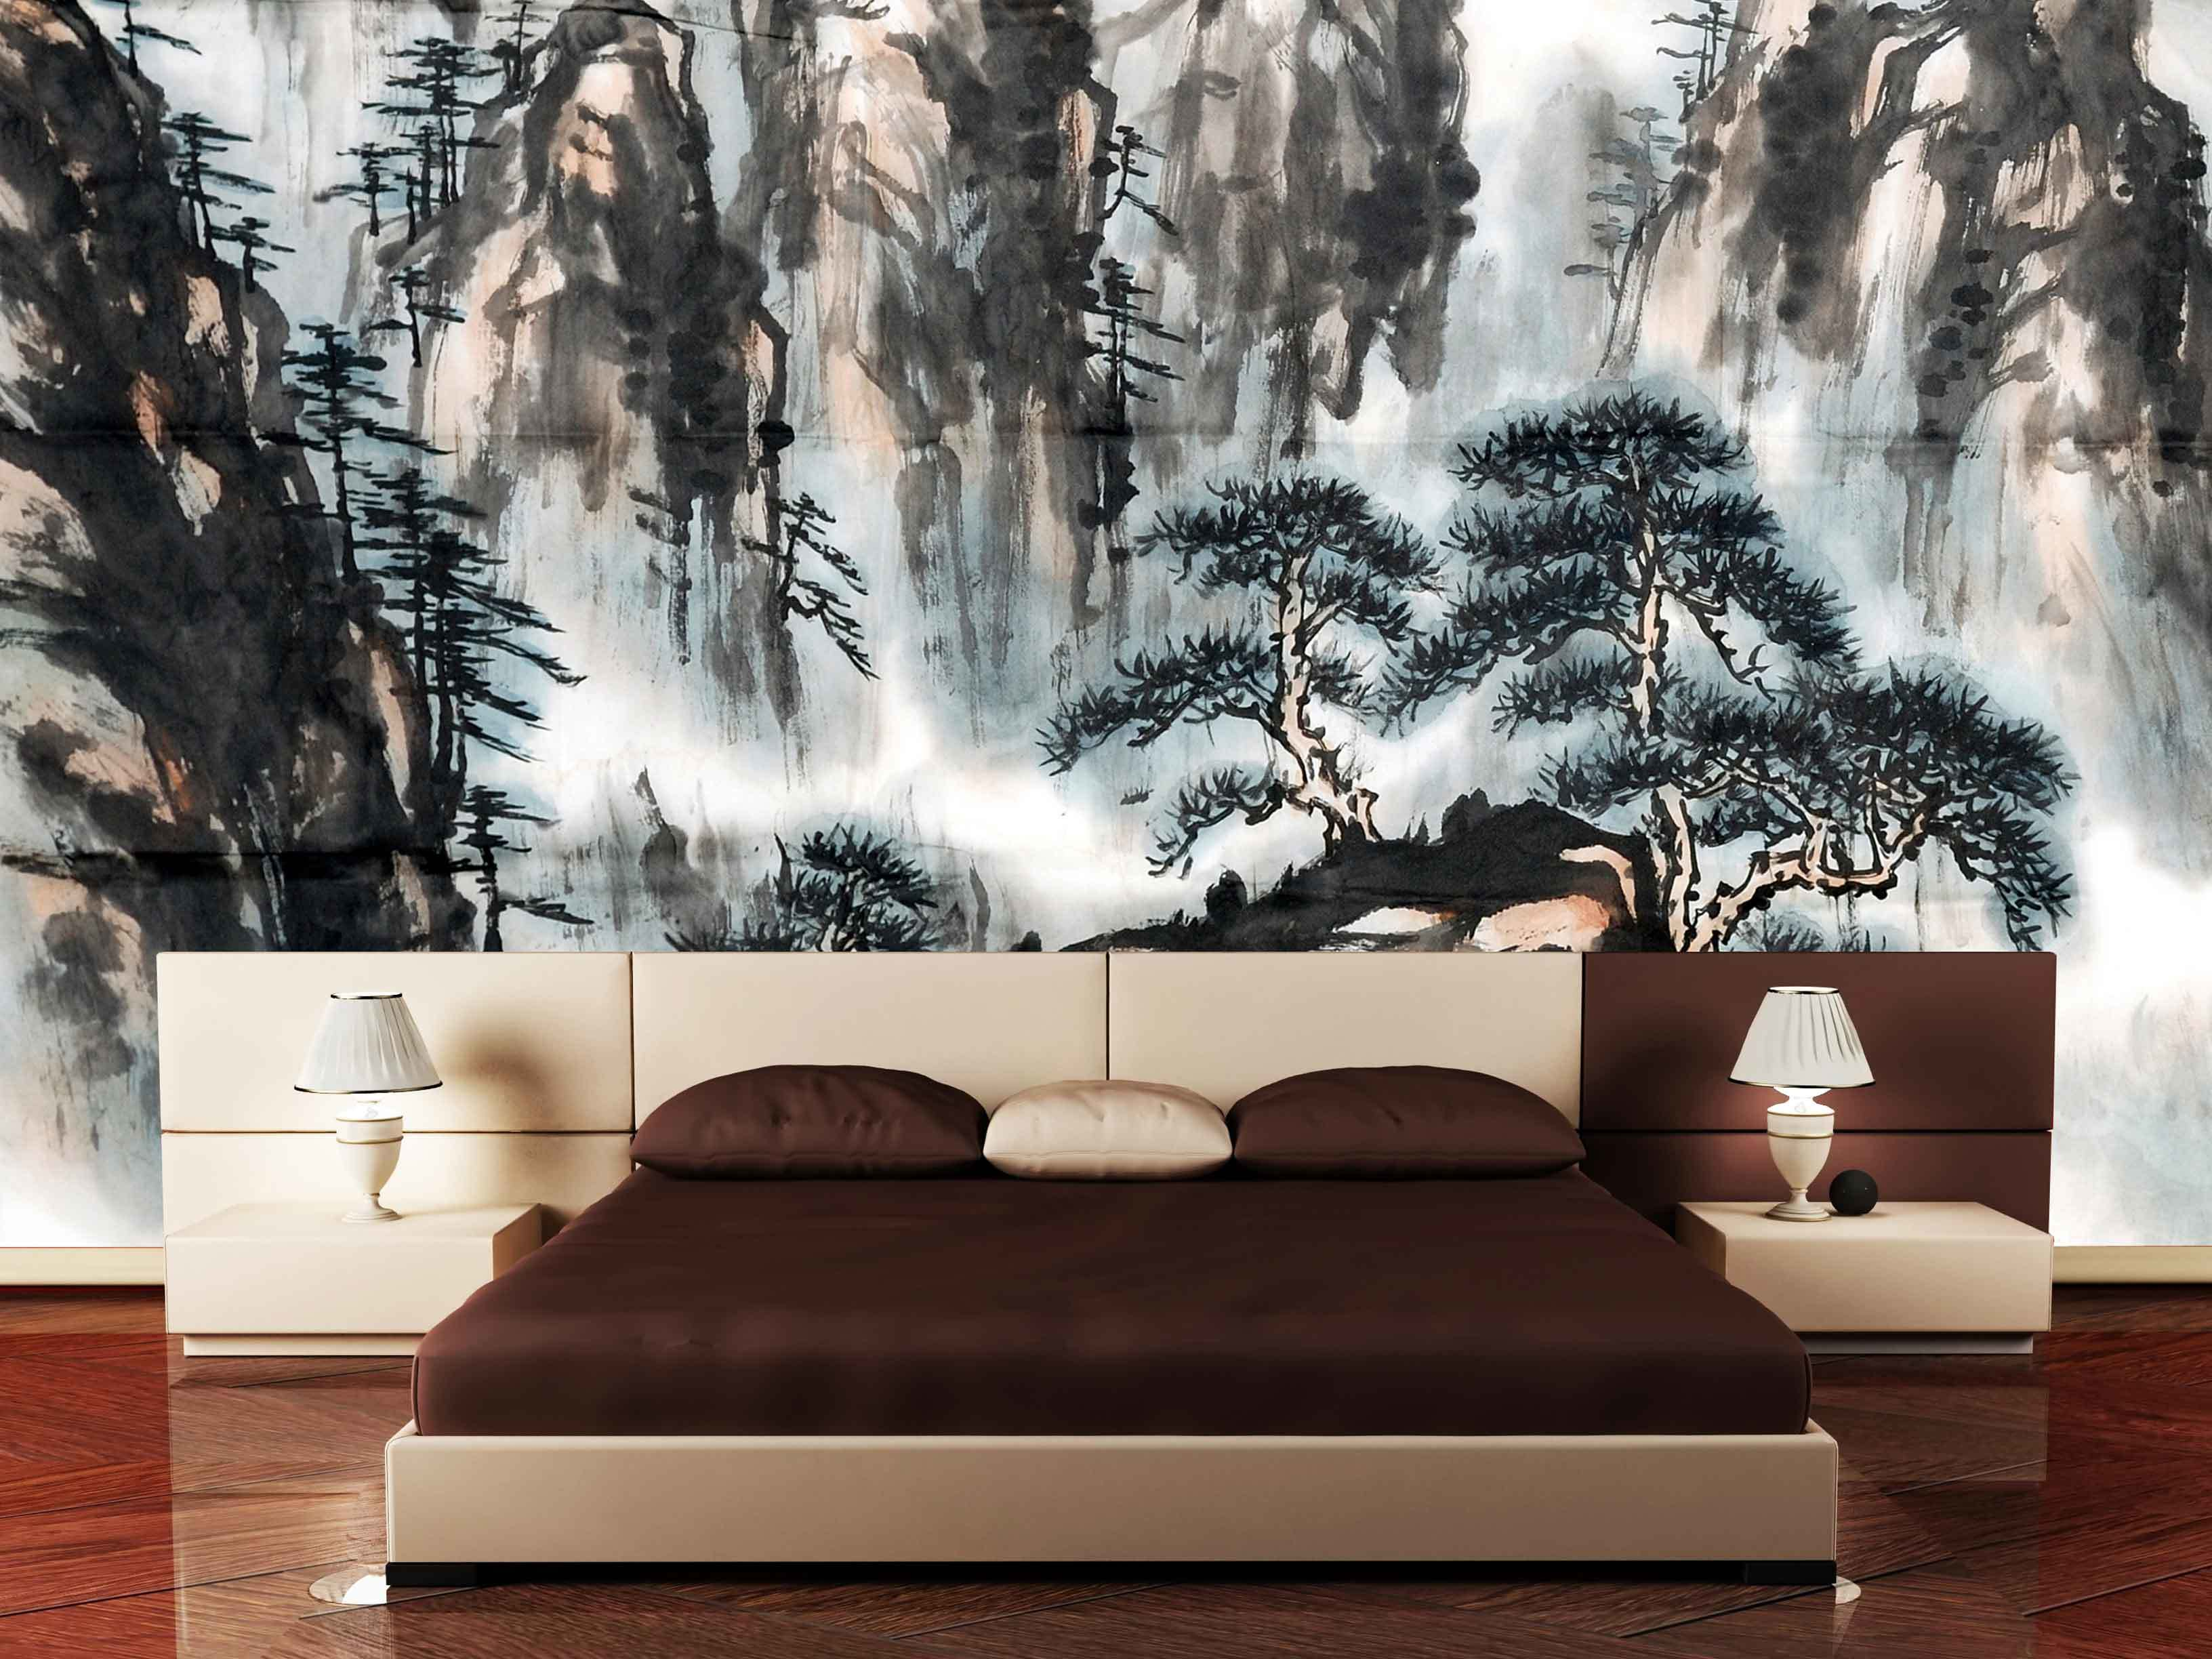 Asian furniture for effective furnishings!